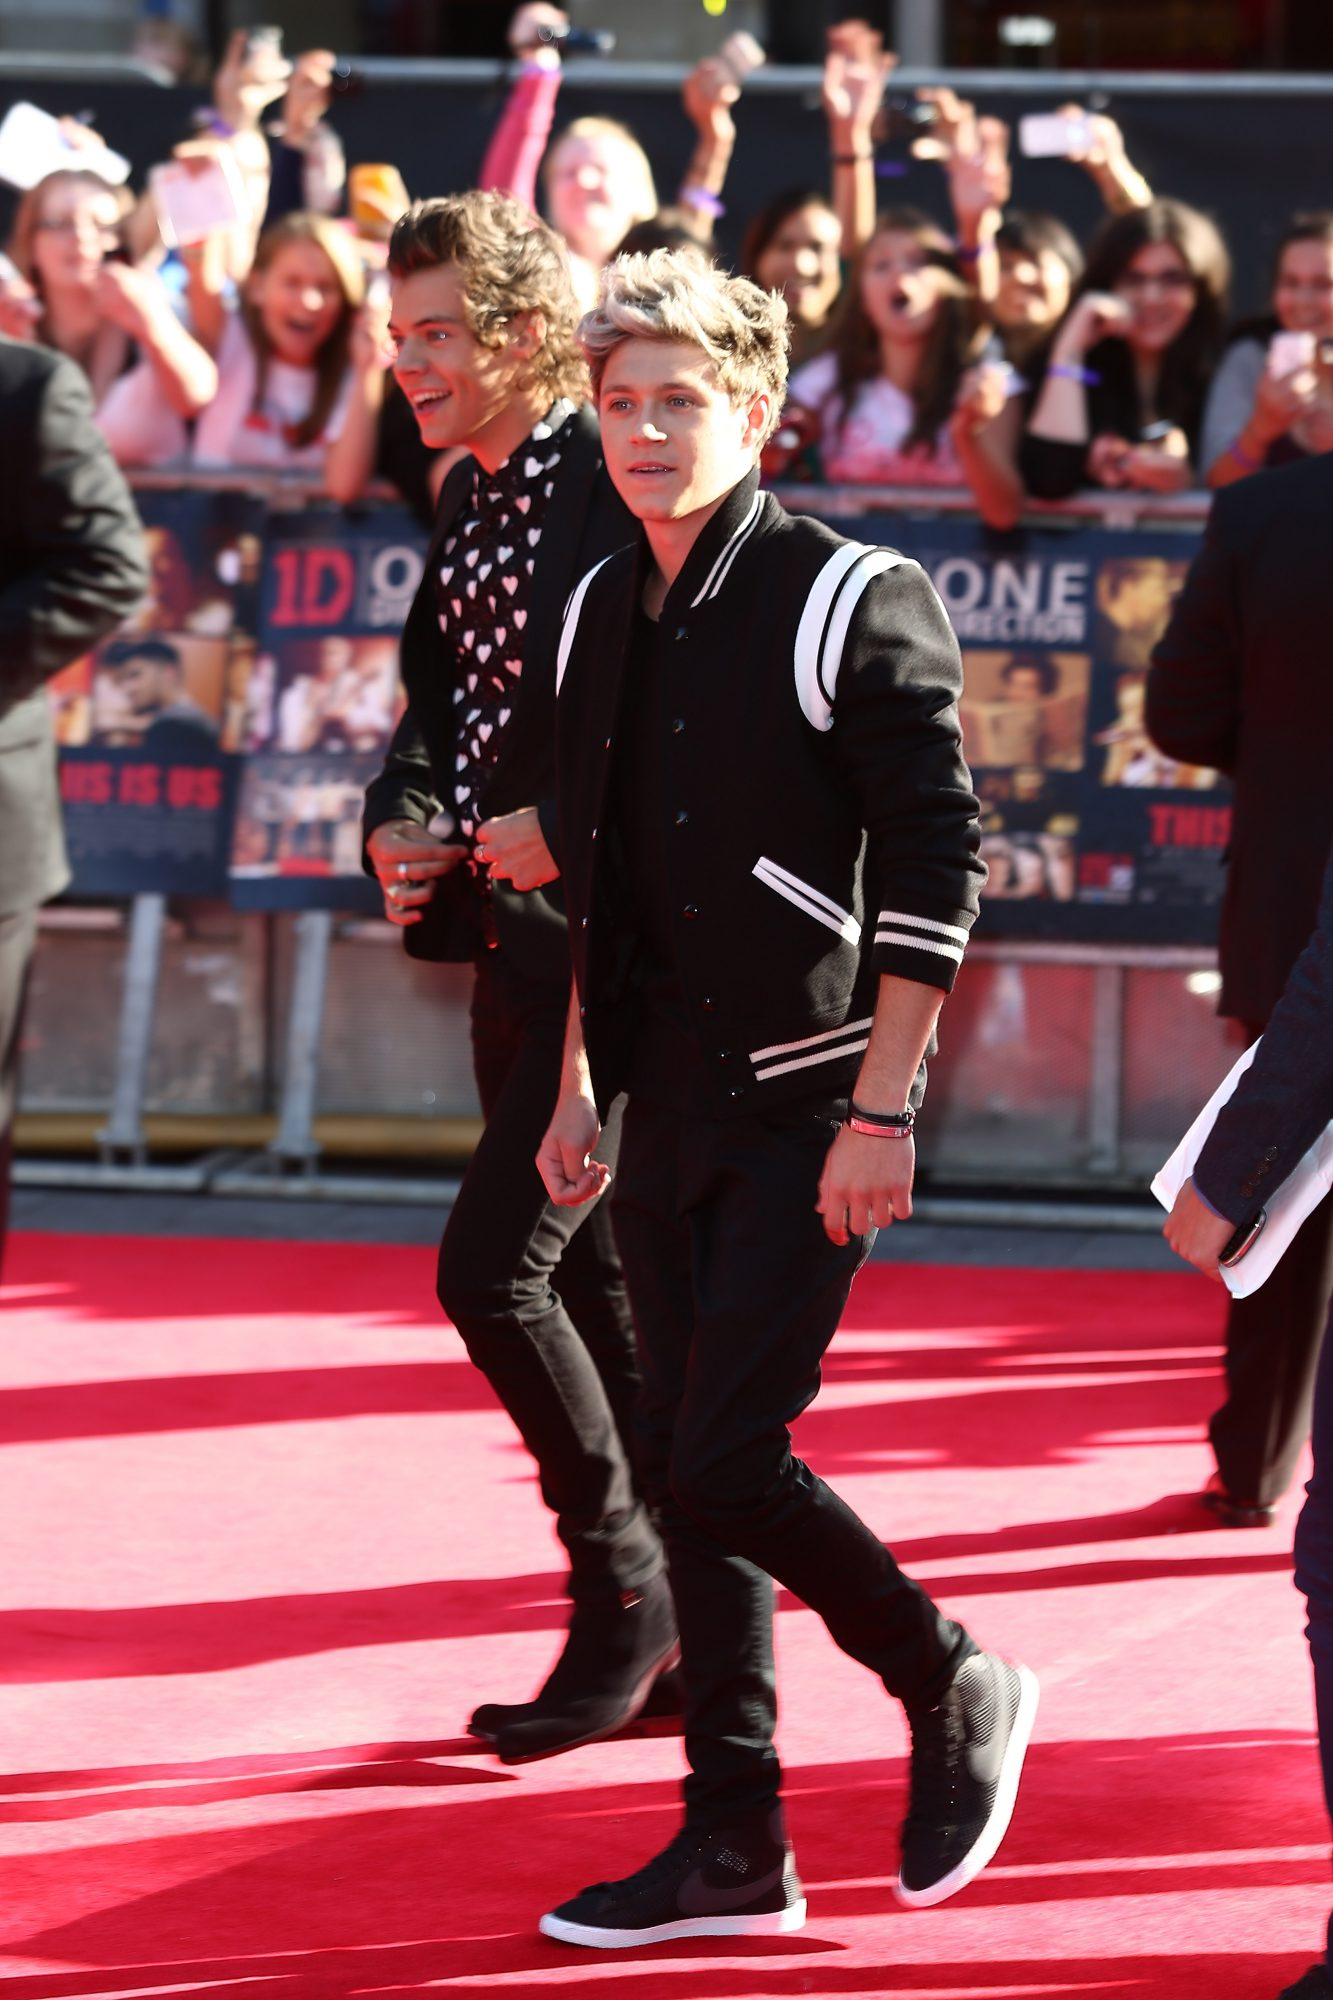 LONDON, ENGLAND - AUGUST 20:  (L-R) One Direction members Harry Styles and Niall Horan attend the World Premiere of 'One Direction: This Is Us' at Empire Leicester Square on August 20, 2013 in London, England.  (Photo by Tim P. Whitby/Getty Images)